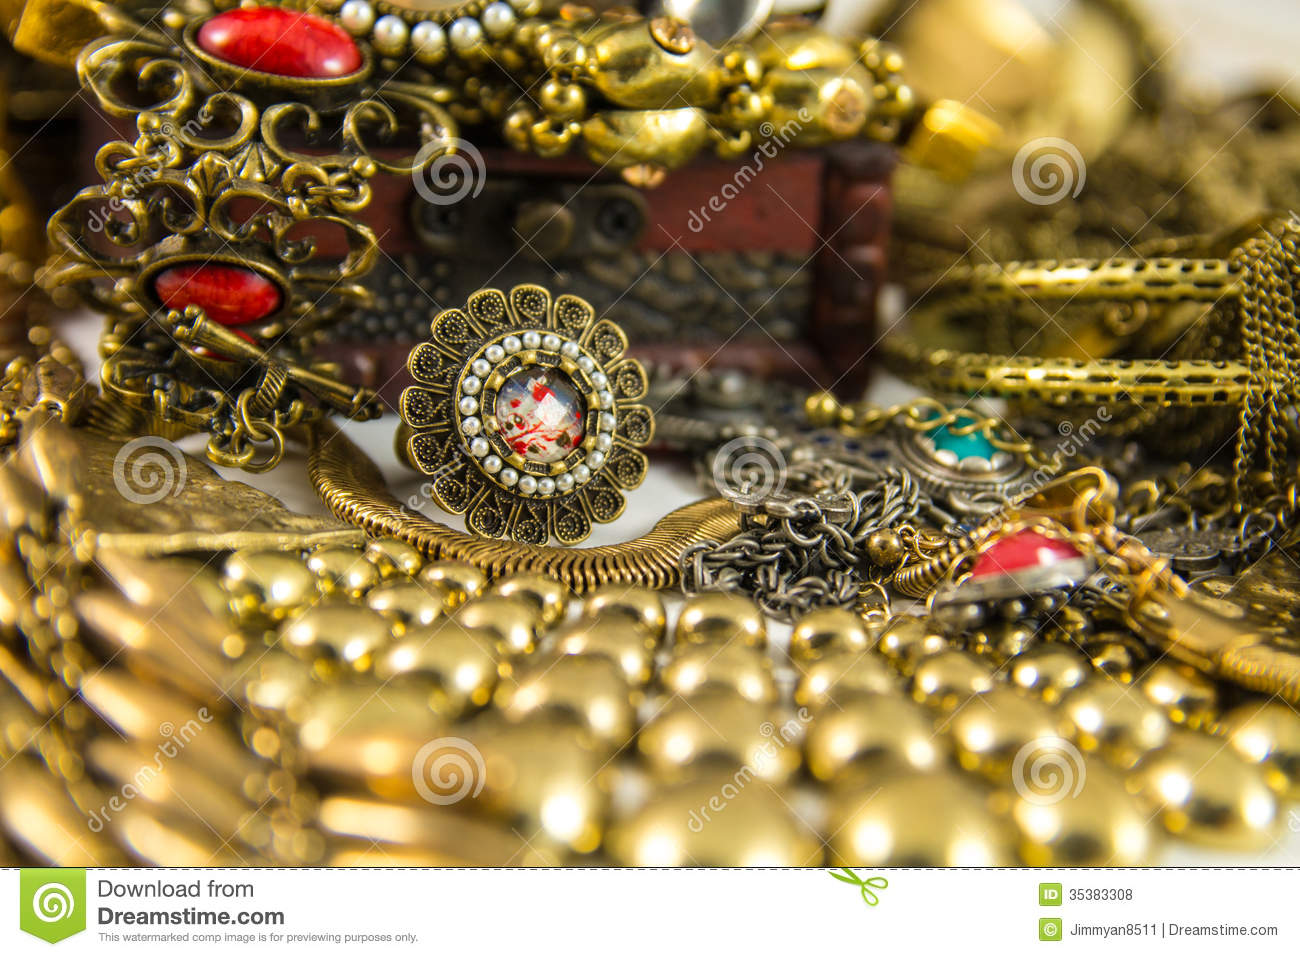 Treasure Chest stock photo. Image of golden, jewelry ...